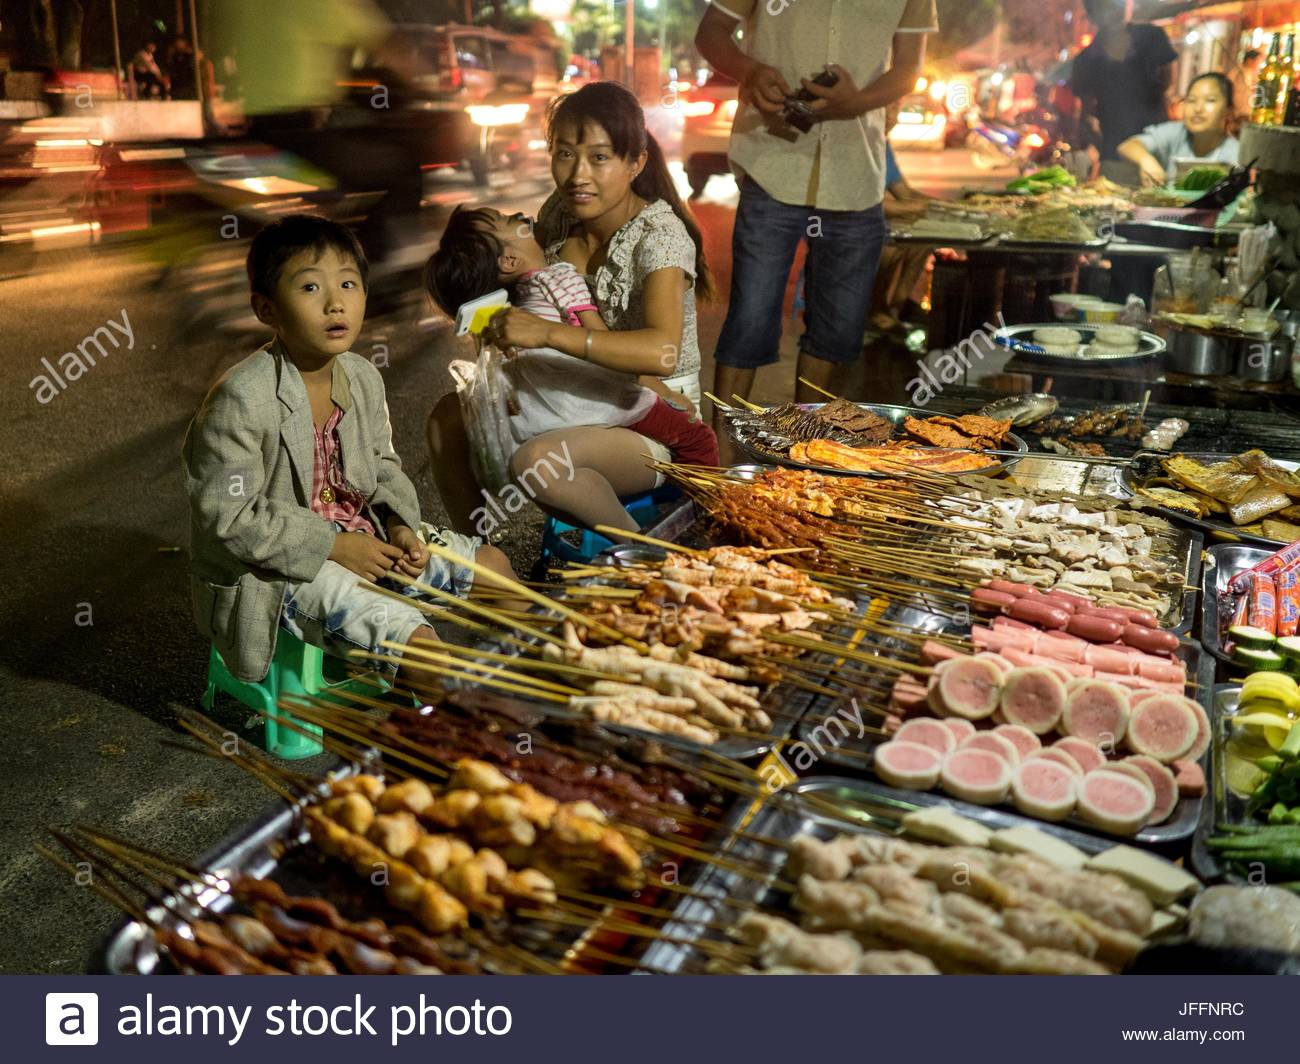 A group of people at a restaurant buffet displaying Chinese food. - Stock Image